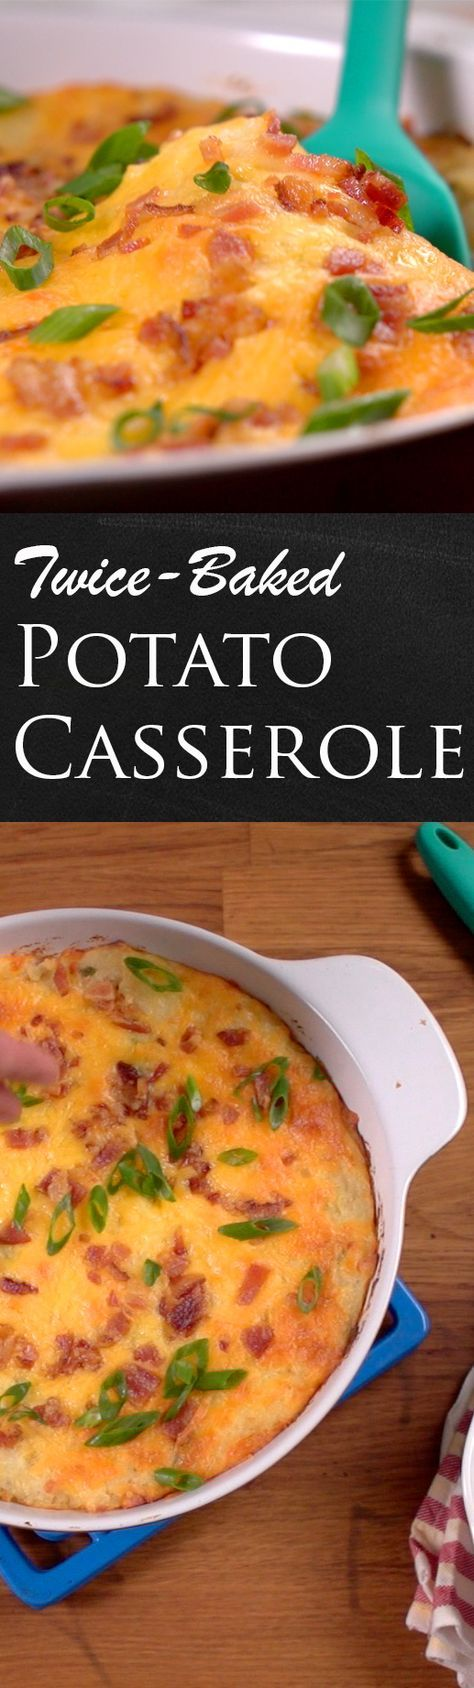 Twice-Baked Potato Casserole Recipe | Here's a side dish of all side dishes mixing potato, cheese, sour cream, spices, and bacon! And you bake it all up in a casserole dish. Click for the video and recipe. #familydinner #homecooking #sides